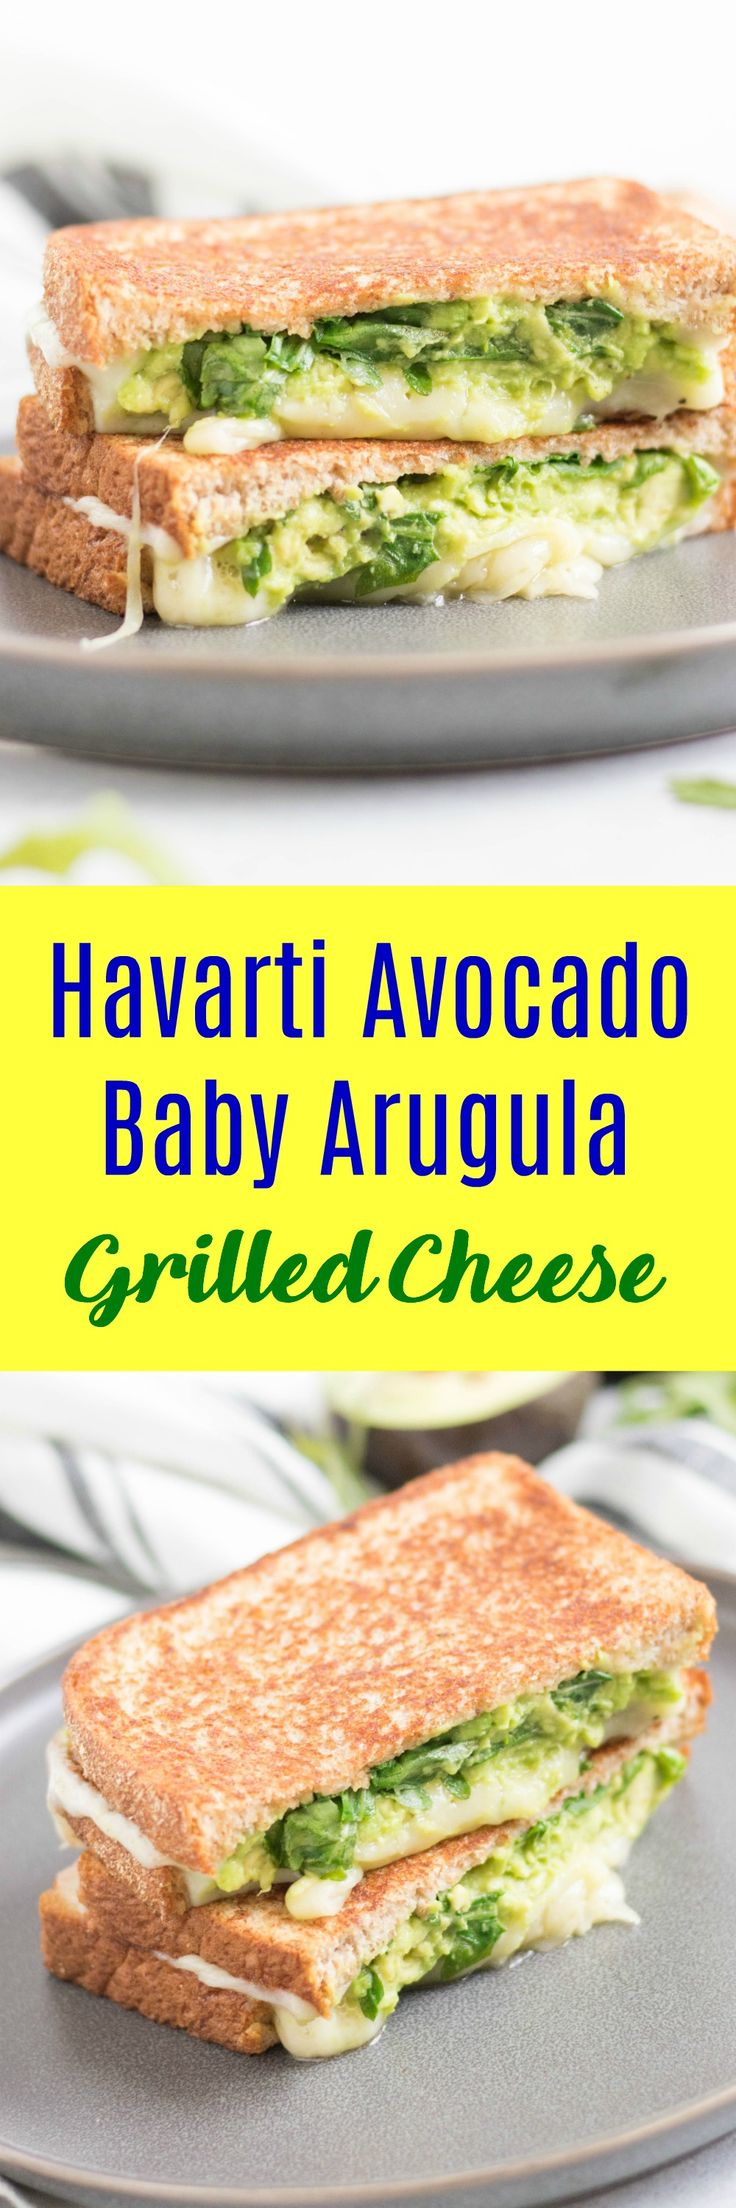 Havarti, Avocado, Baby Arugula Grilled Cheese